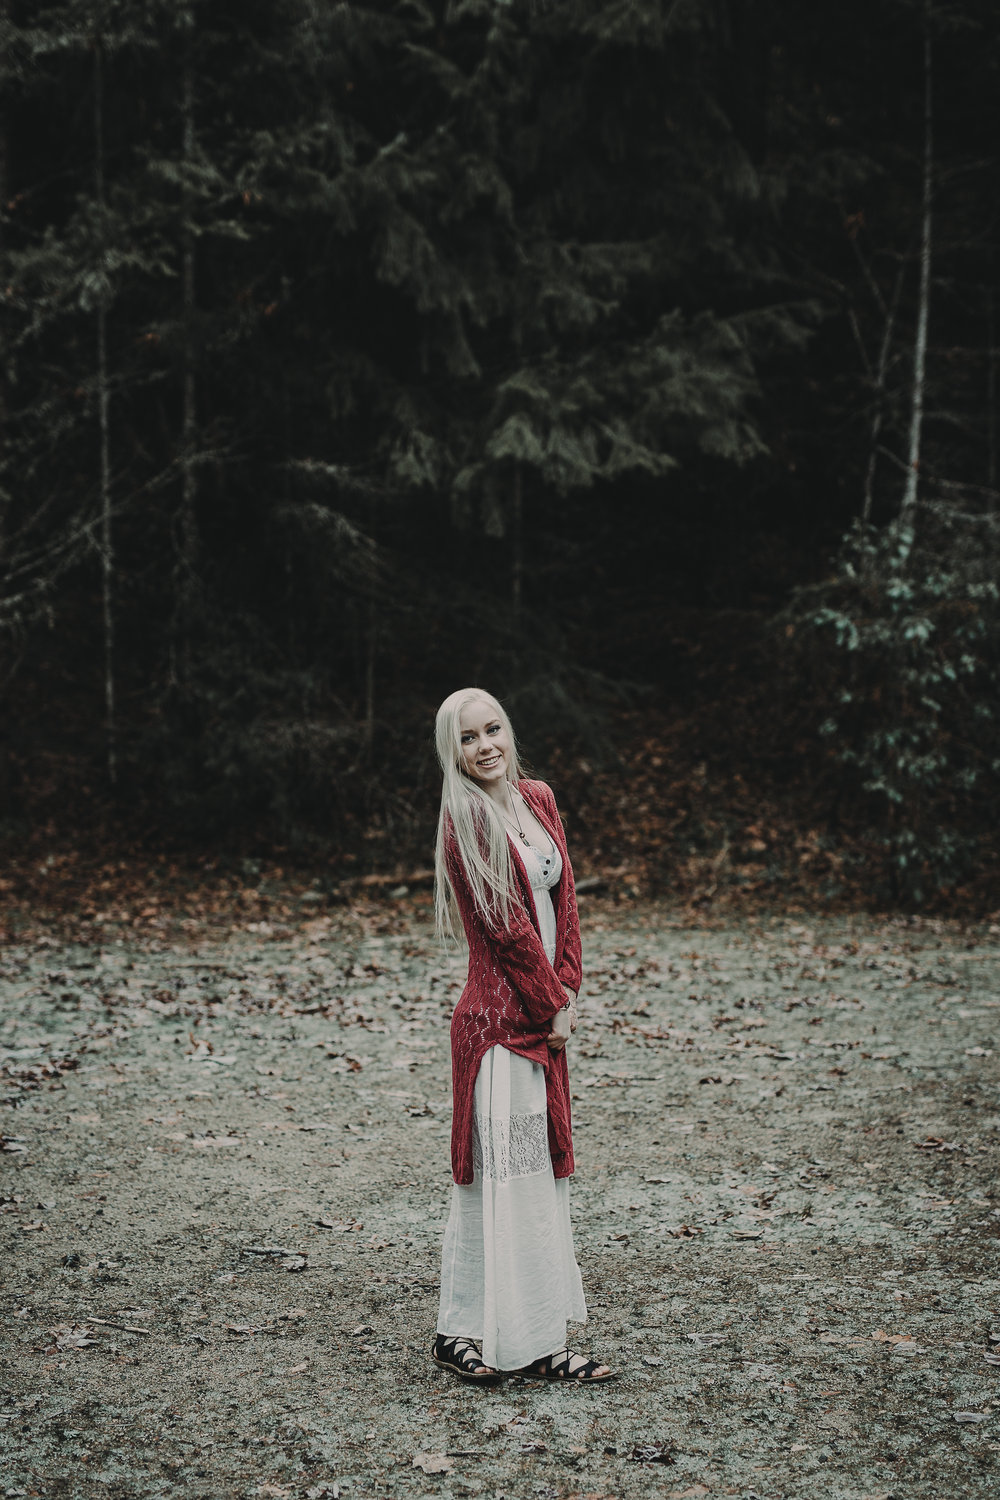 Senior girl in woods wearing white dress